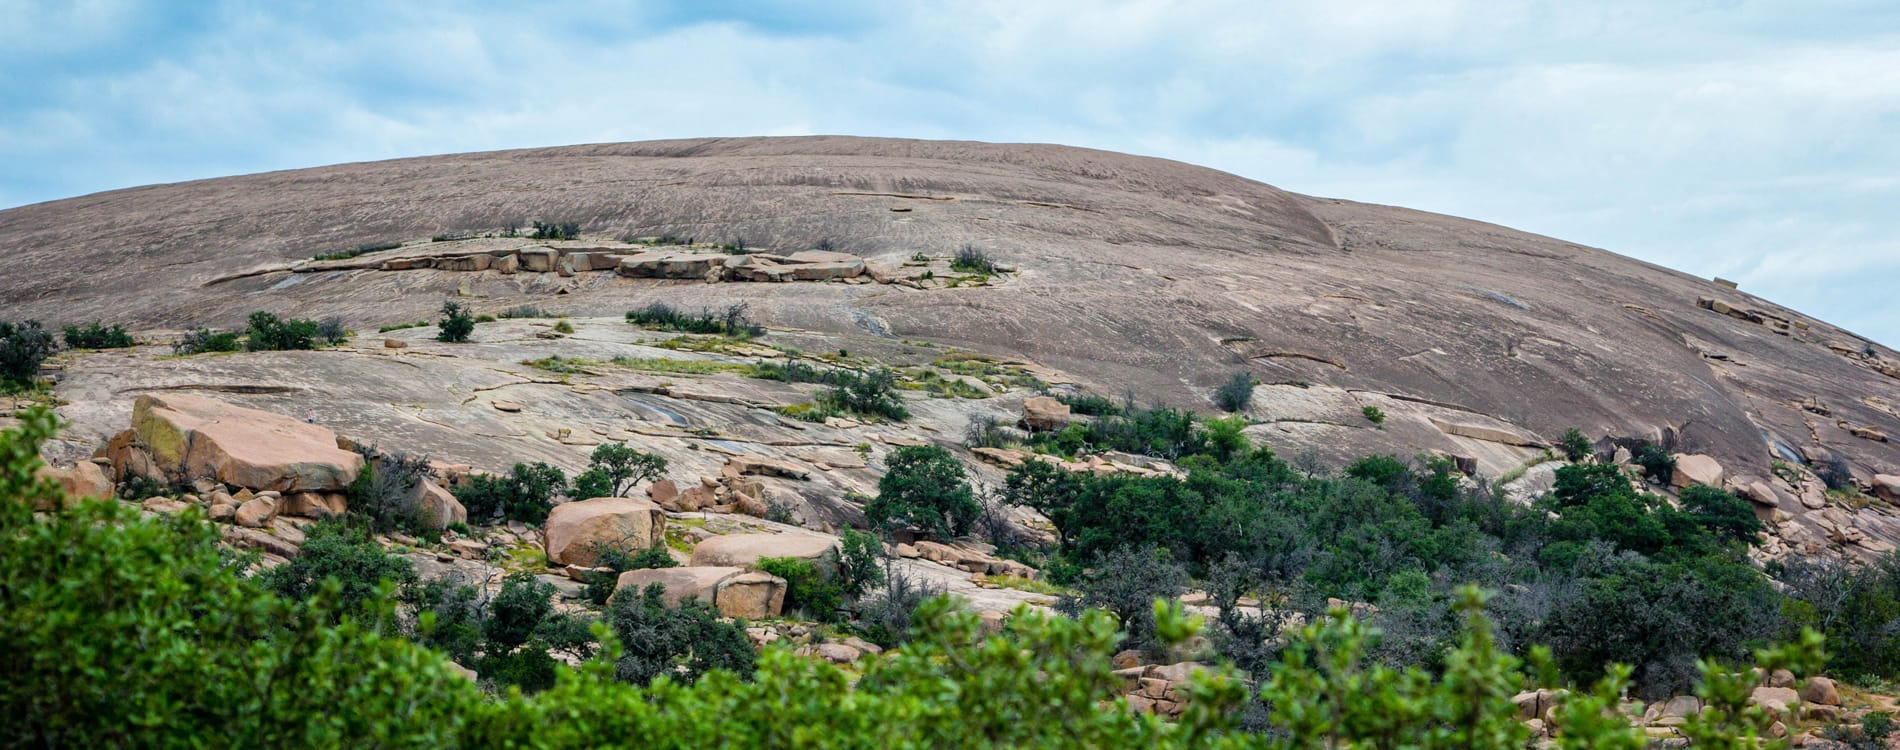 Fredericksburg, TX - Enchanted Rock